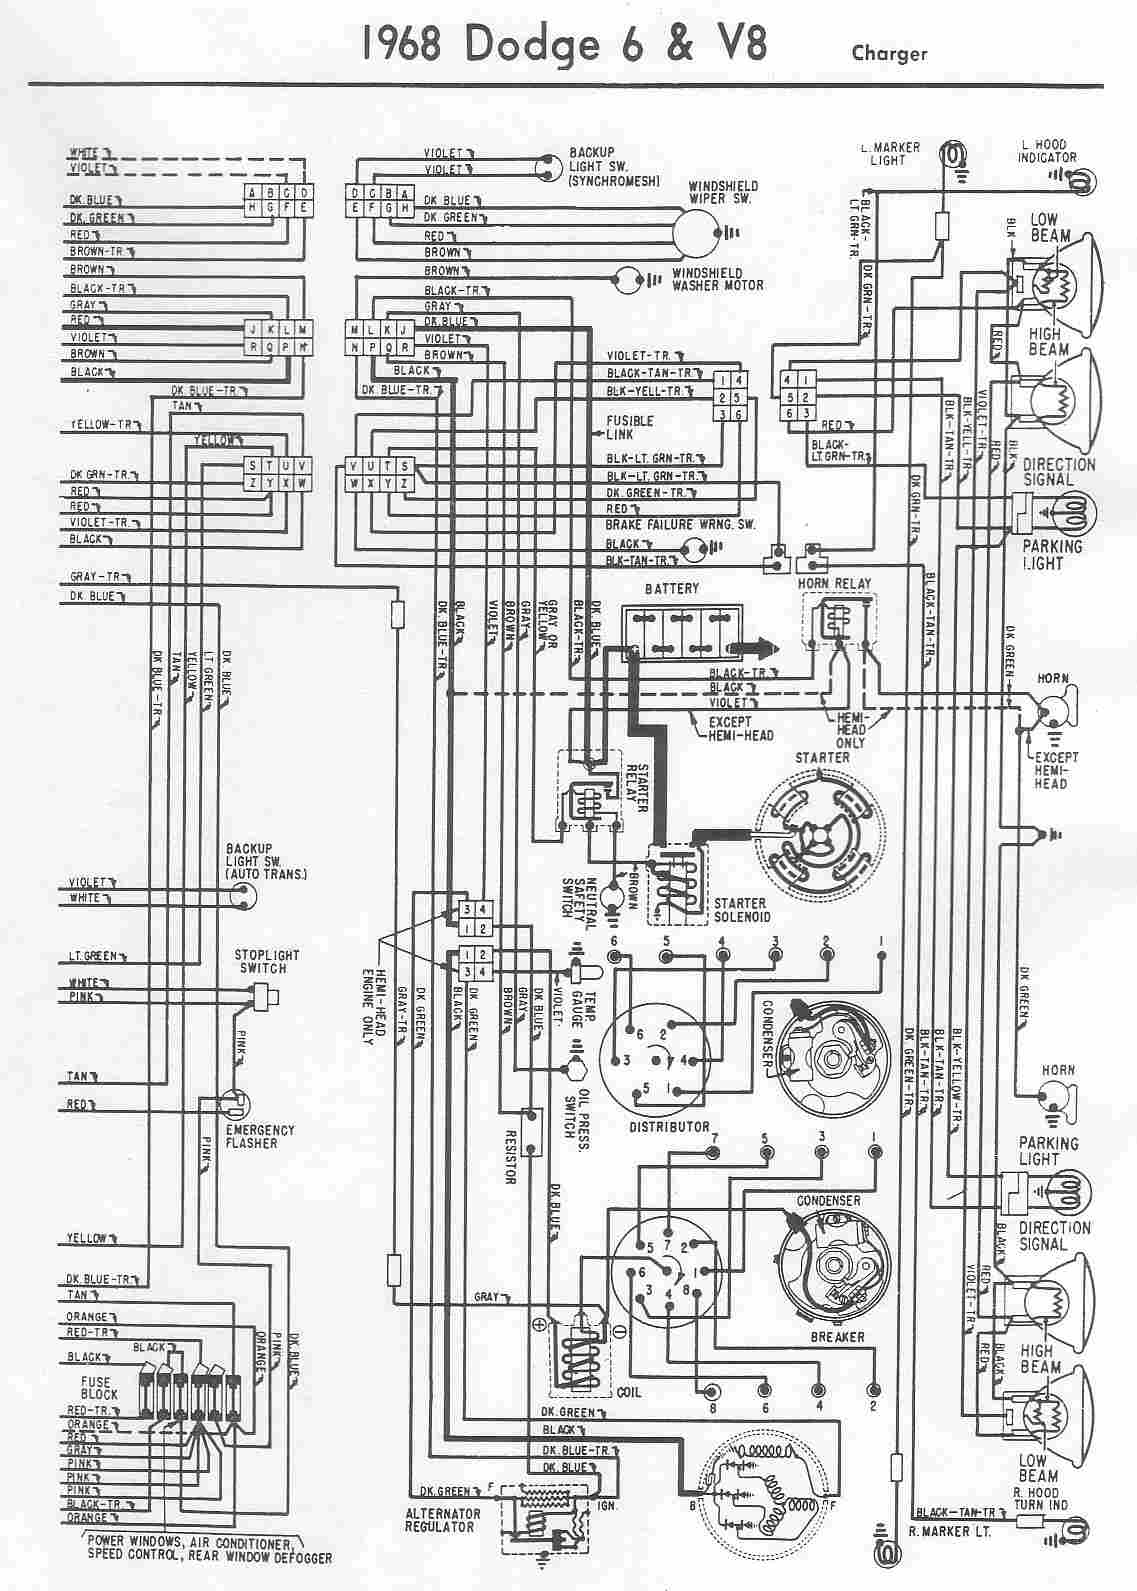 1998 dodge neon wiring diagram free picture how to install replaceheater wiring diagram for 98 neon wiring library crank sensor wiring diagram 1996 1997 1998 dodge plymouth neon 20l